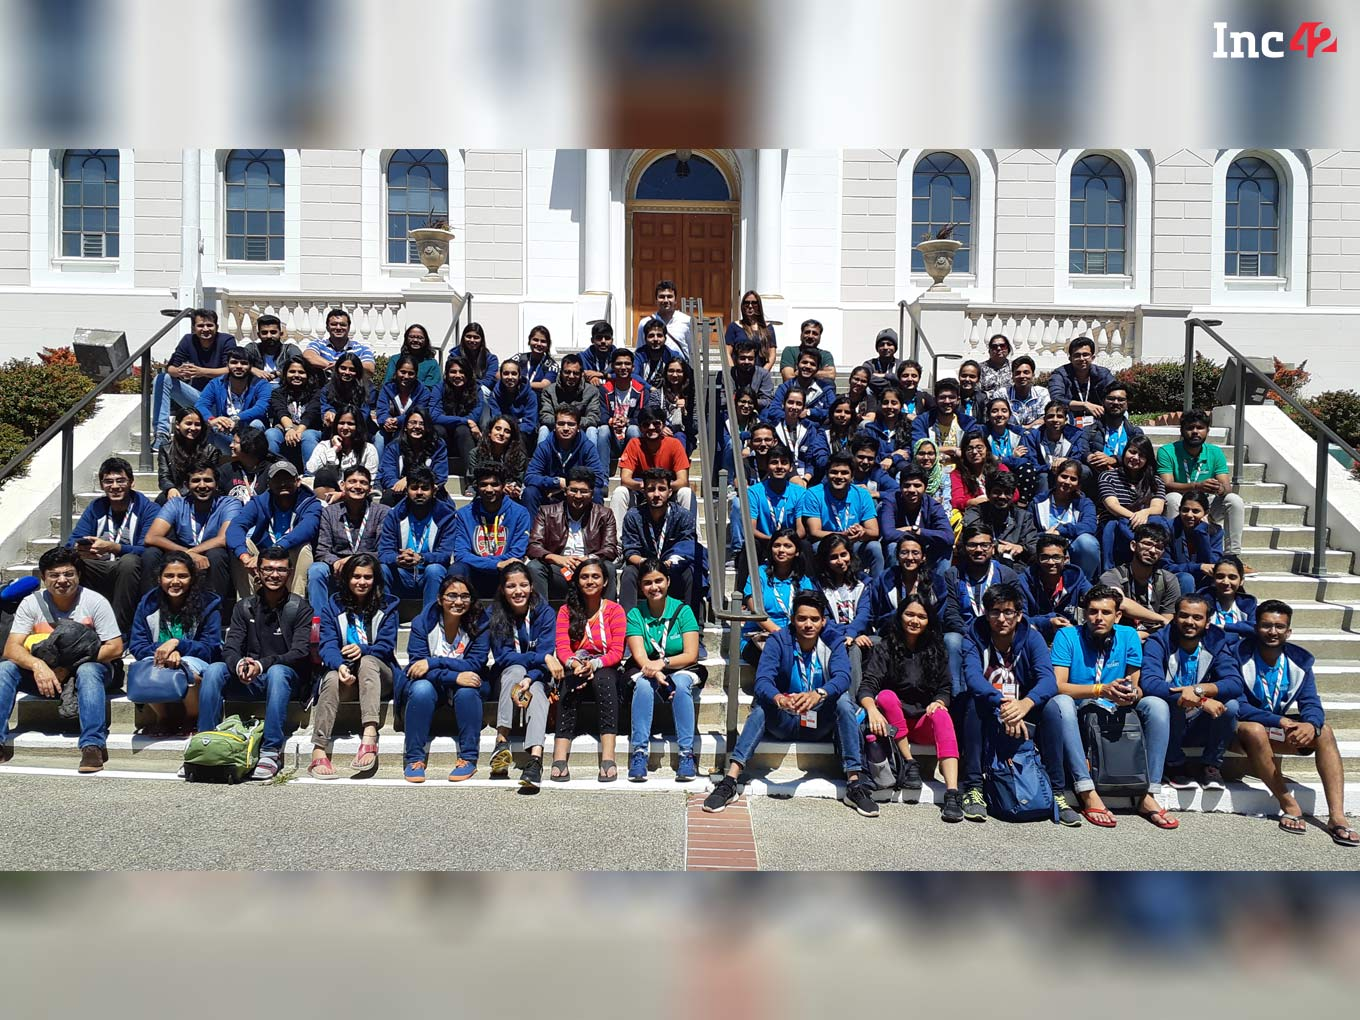 100 Students From Rajasthan Travel To Silicon Valley For The Student Startup Exposure Program